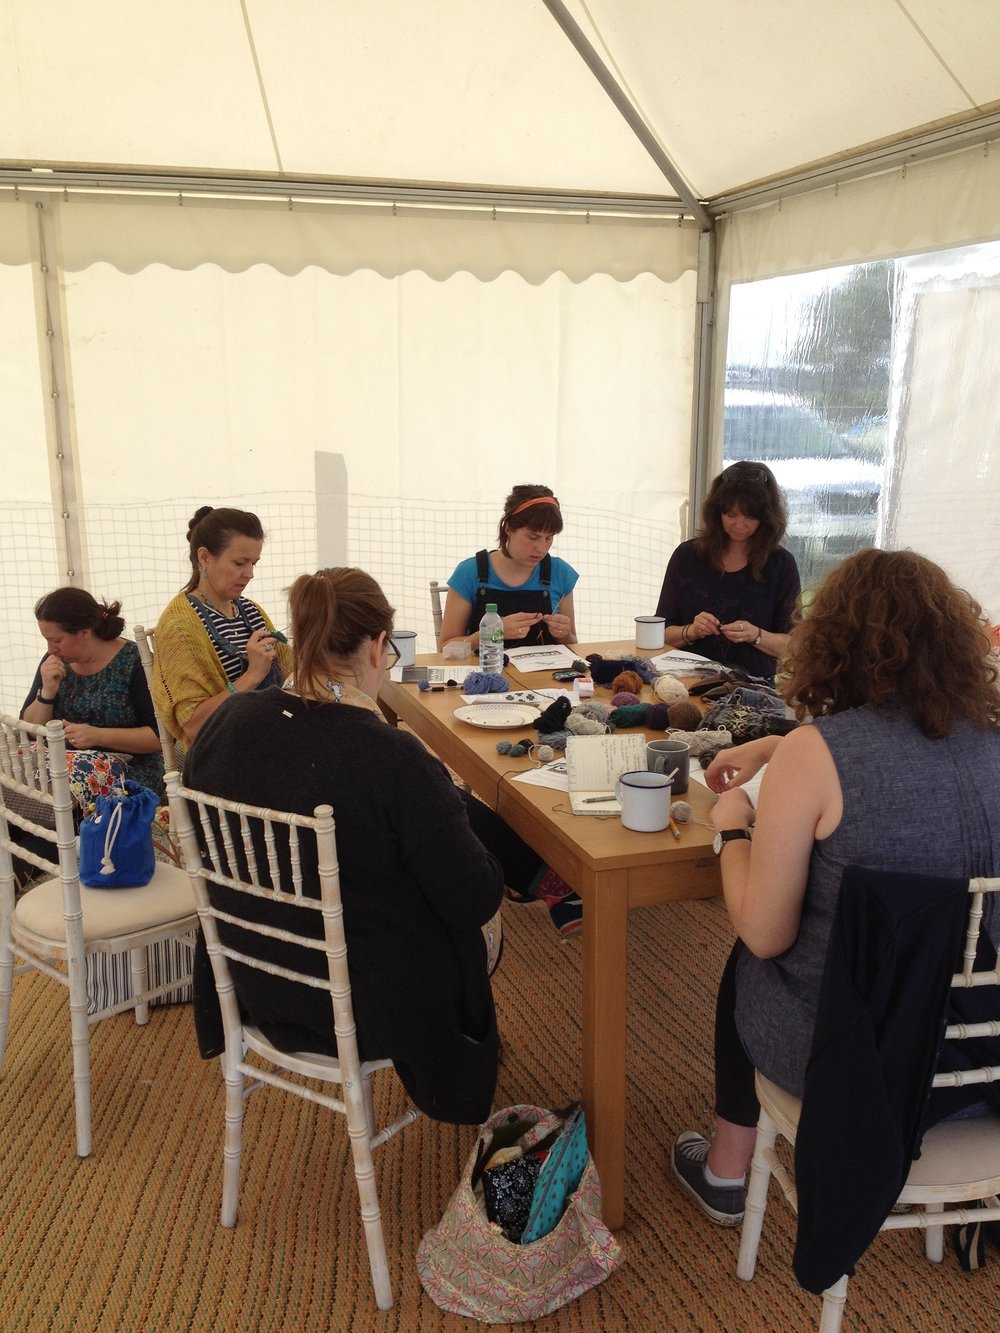 Teaching Fair Isle knitting inside the marquee